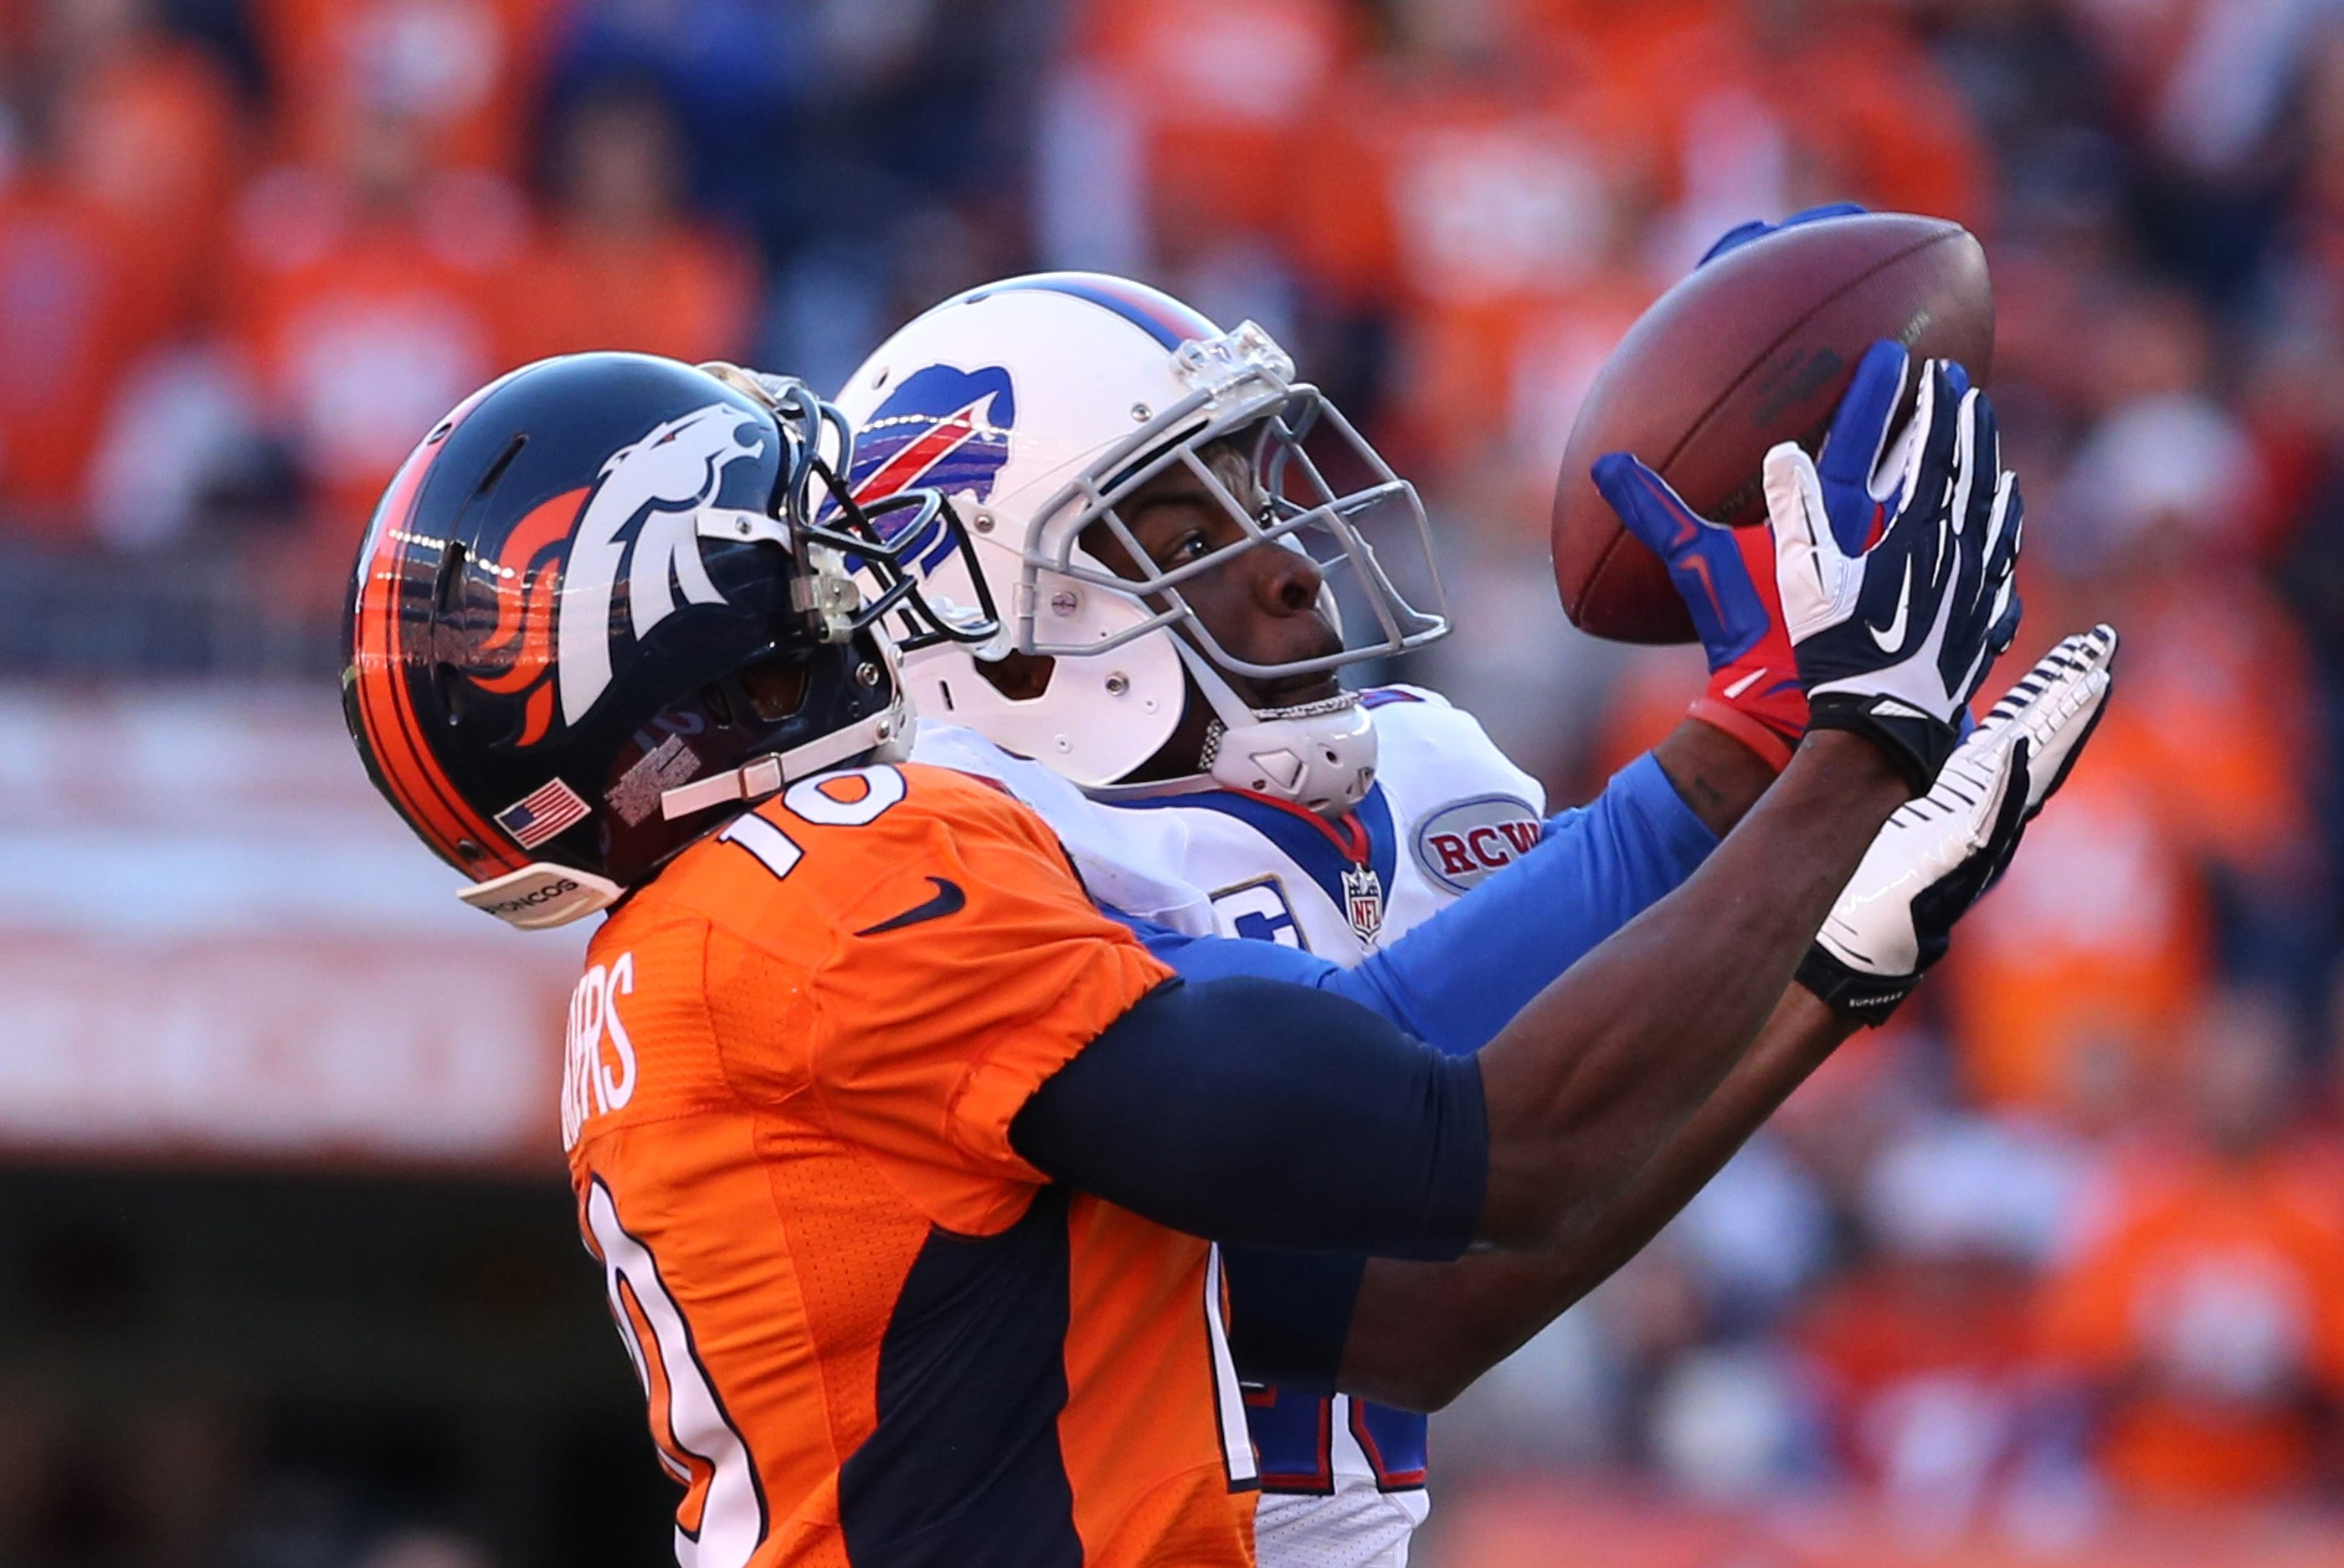 Bills cornerback Corey Graham, here intercepting a pass in front of Denver wide receiver Emmanuel Sanders last season, will move to safety for the remaining OTAs, training camp and the preseason as Bills coaches seek to put the best players on the field.